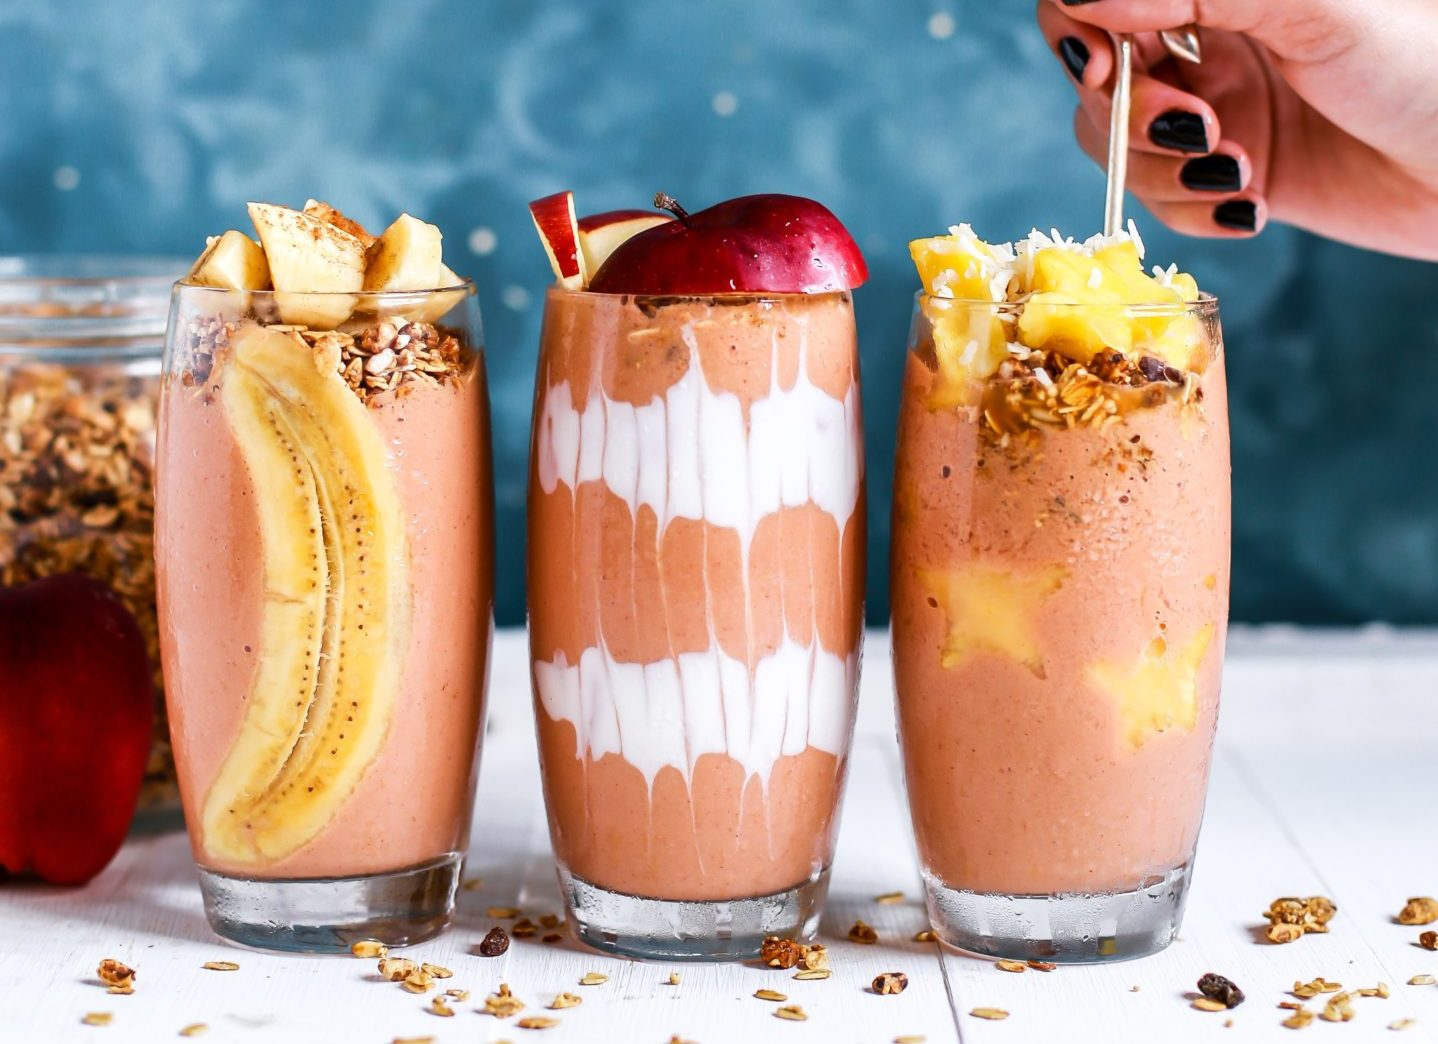 9 Tips to Building Better Smoothies